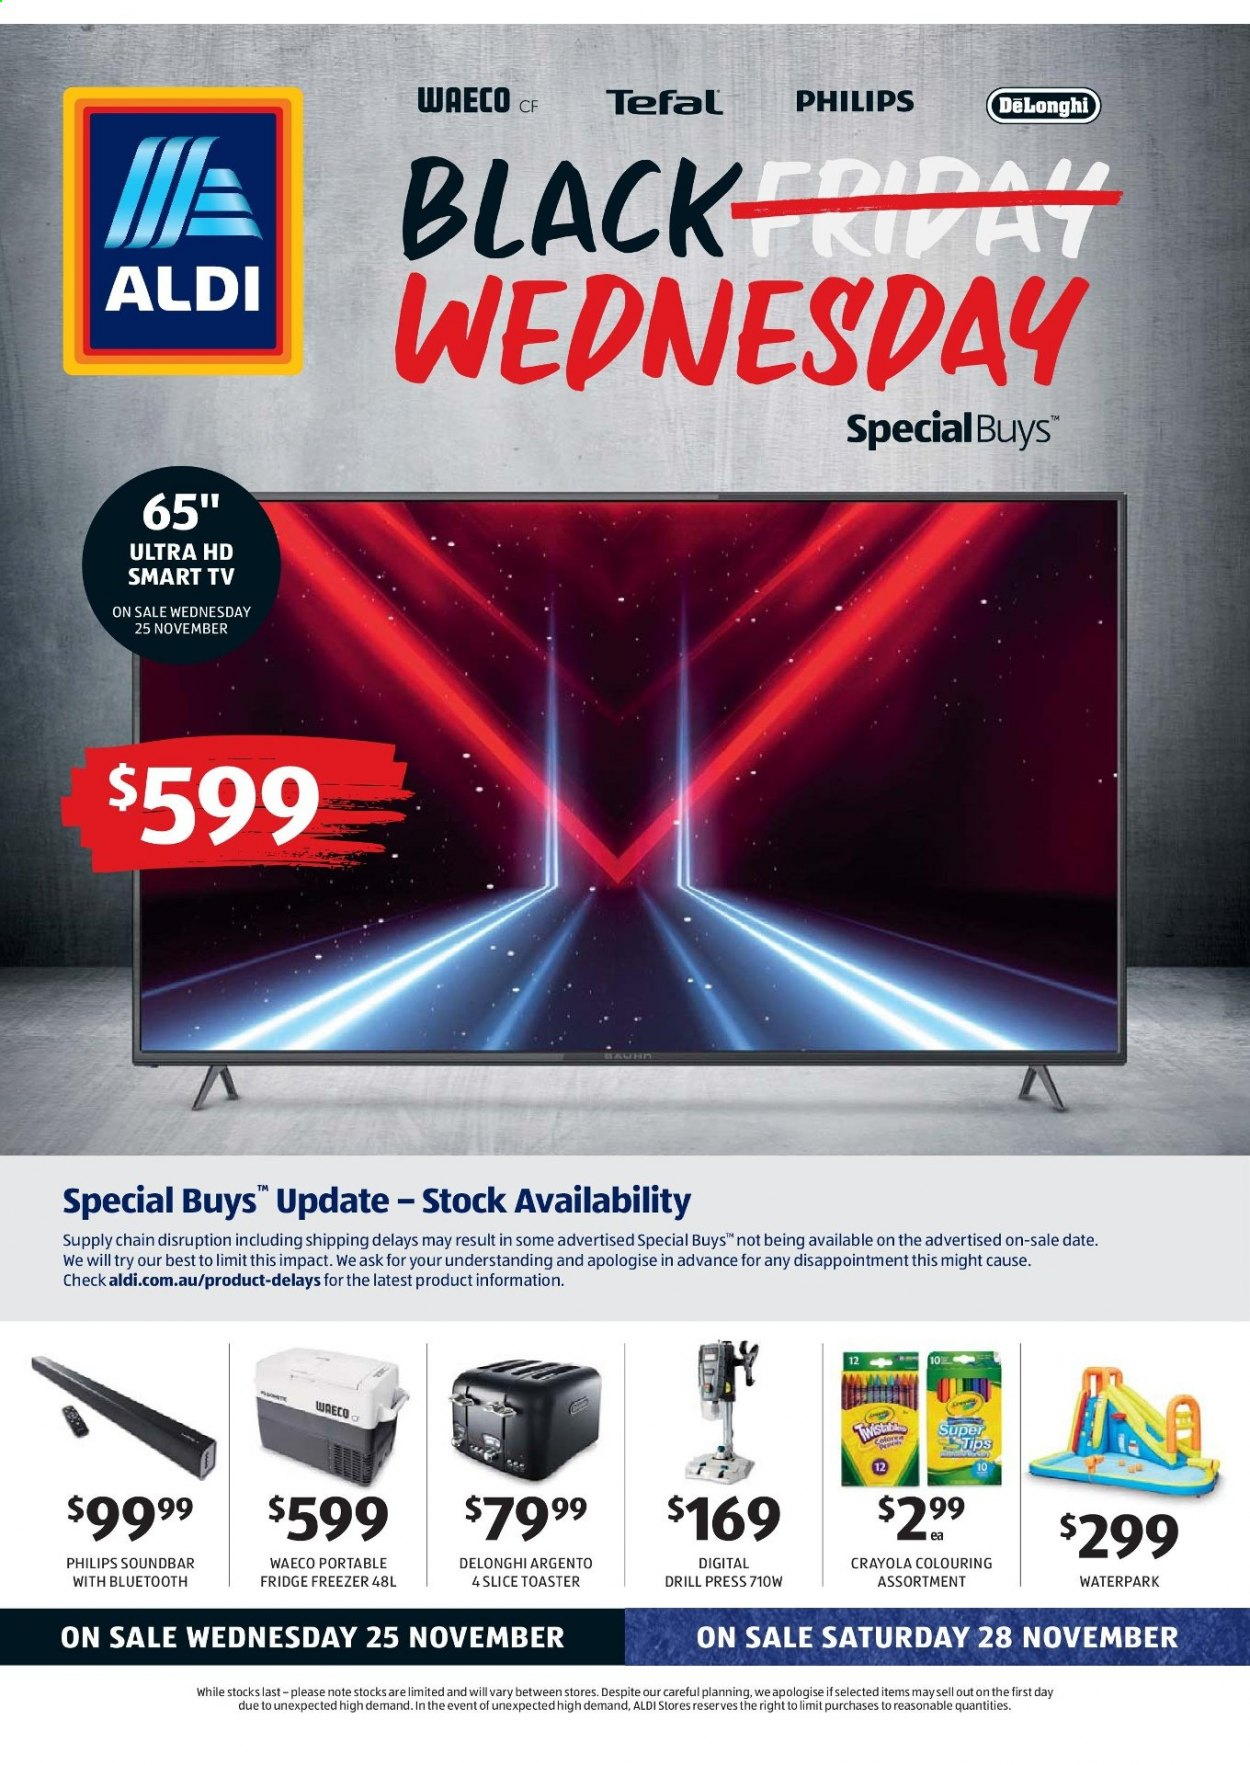 ALDI Catalogue - 25.11.2020 - 1.12.2020 - Sales products - Philips, Tefal, toaster, TV. Page 1.